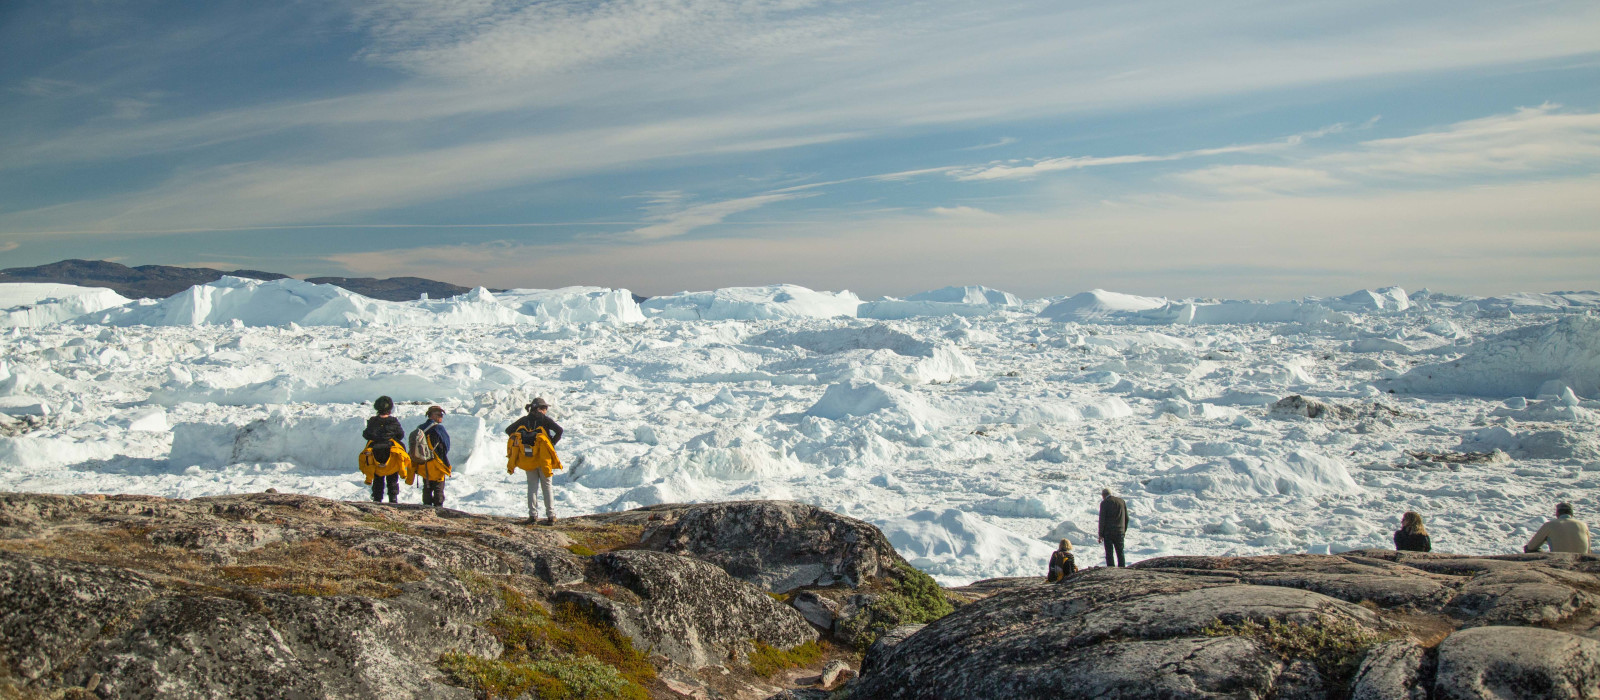 Greenland Adventure: Explore by Sea, Land and Air Tour Trip 1